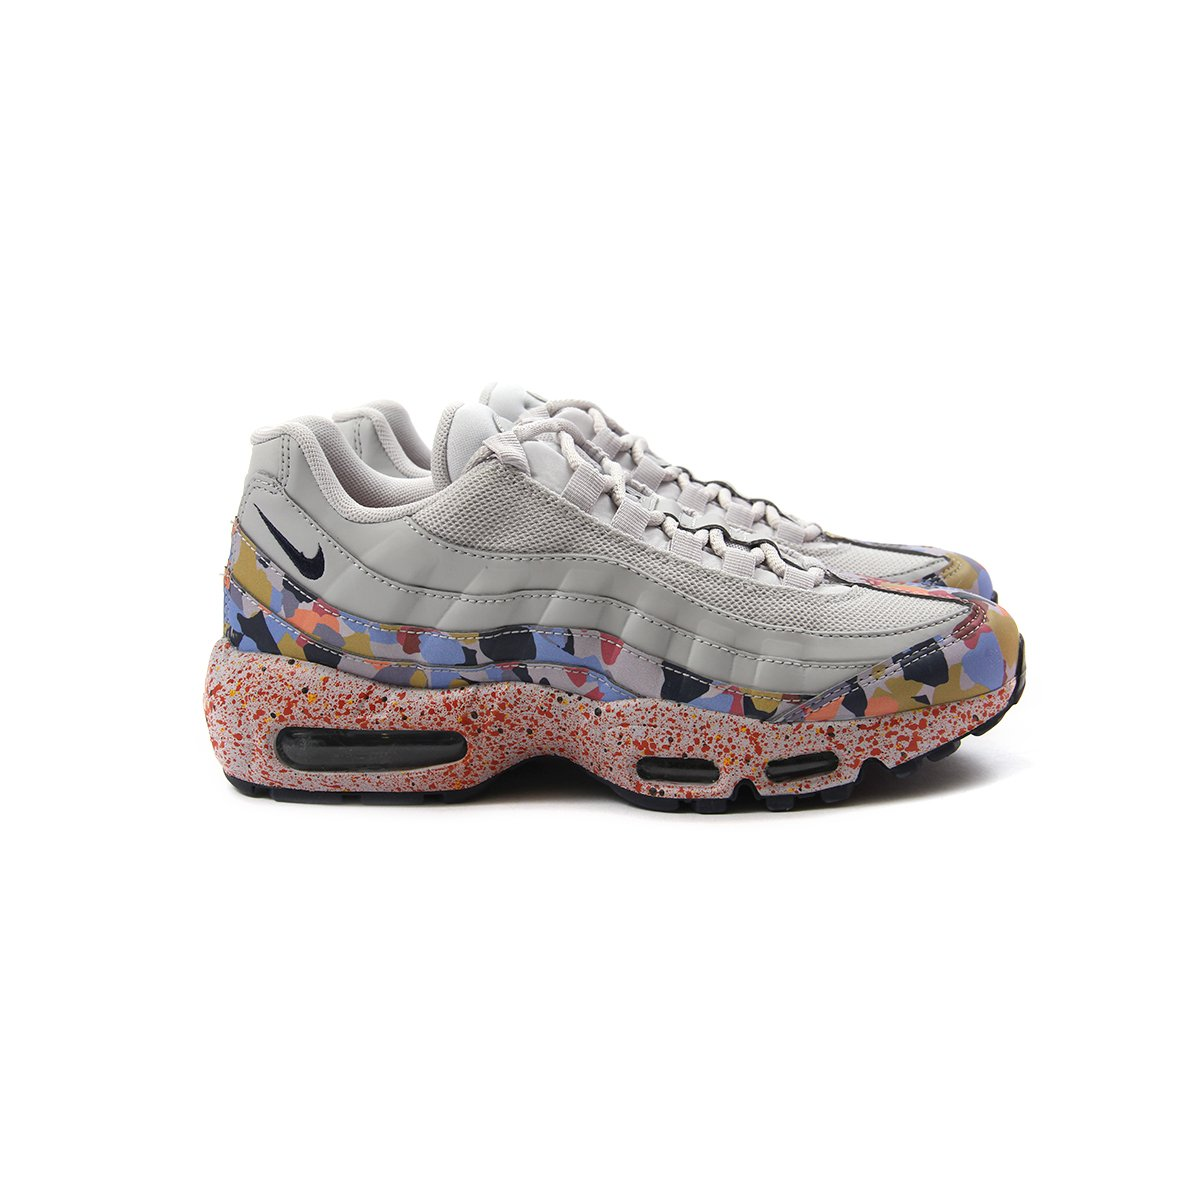 51bba61b77 ConceptsIntl | Nike Womens Air Max 95 SE (Vast Grey/Midnight Navy ...